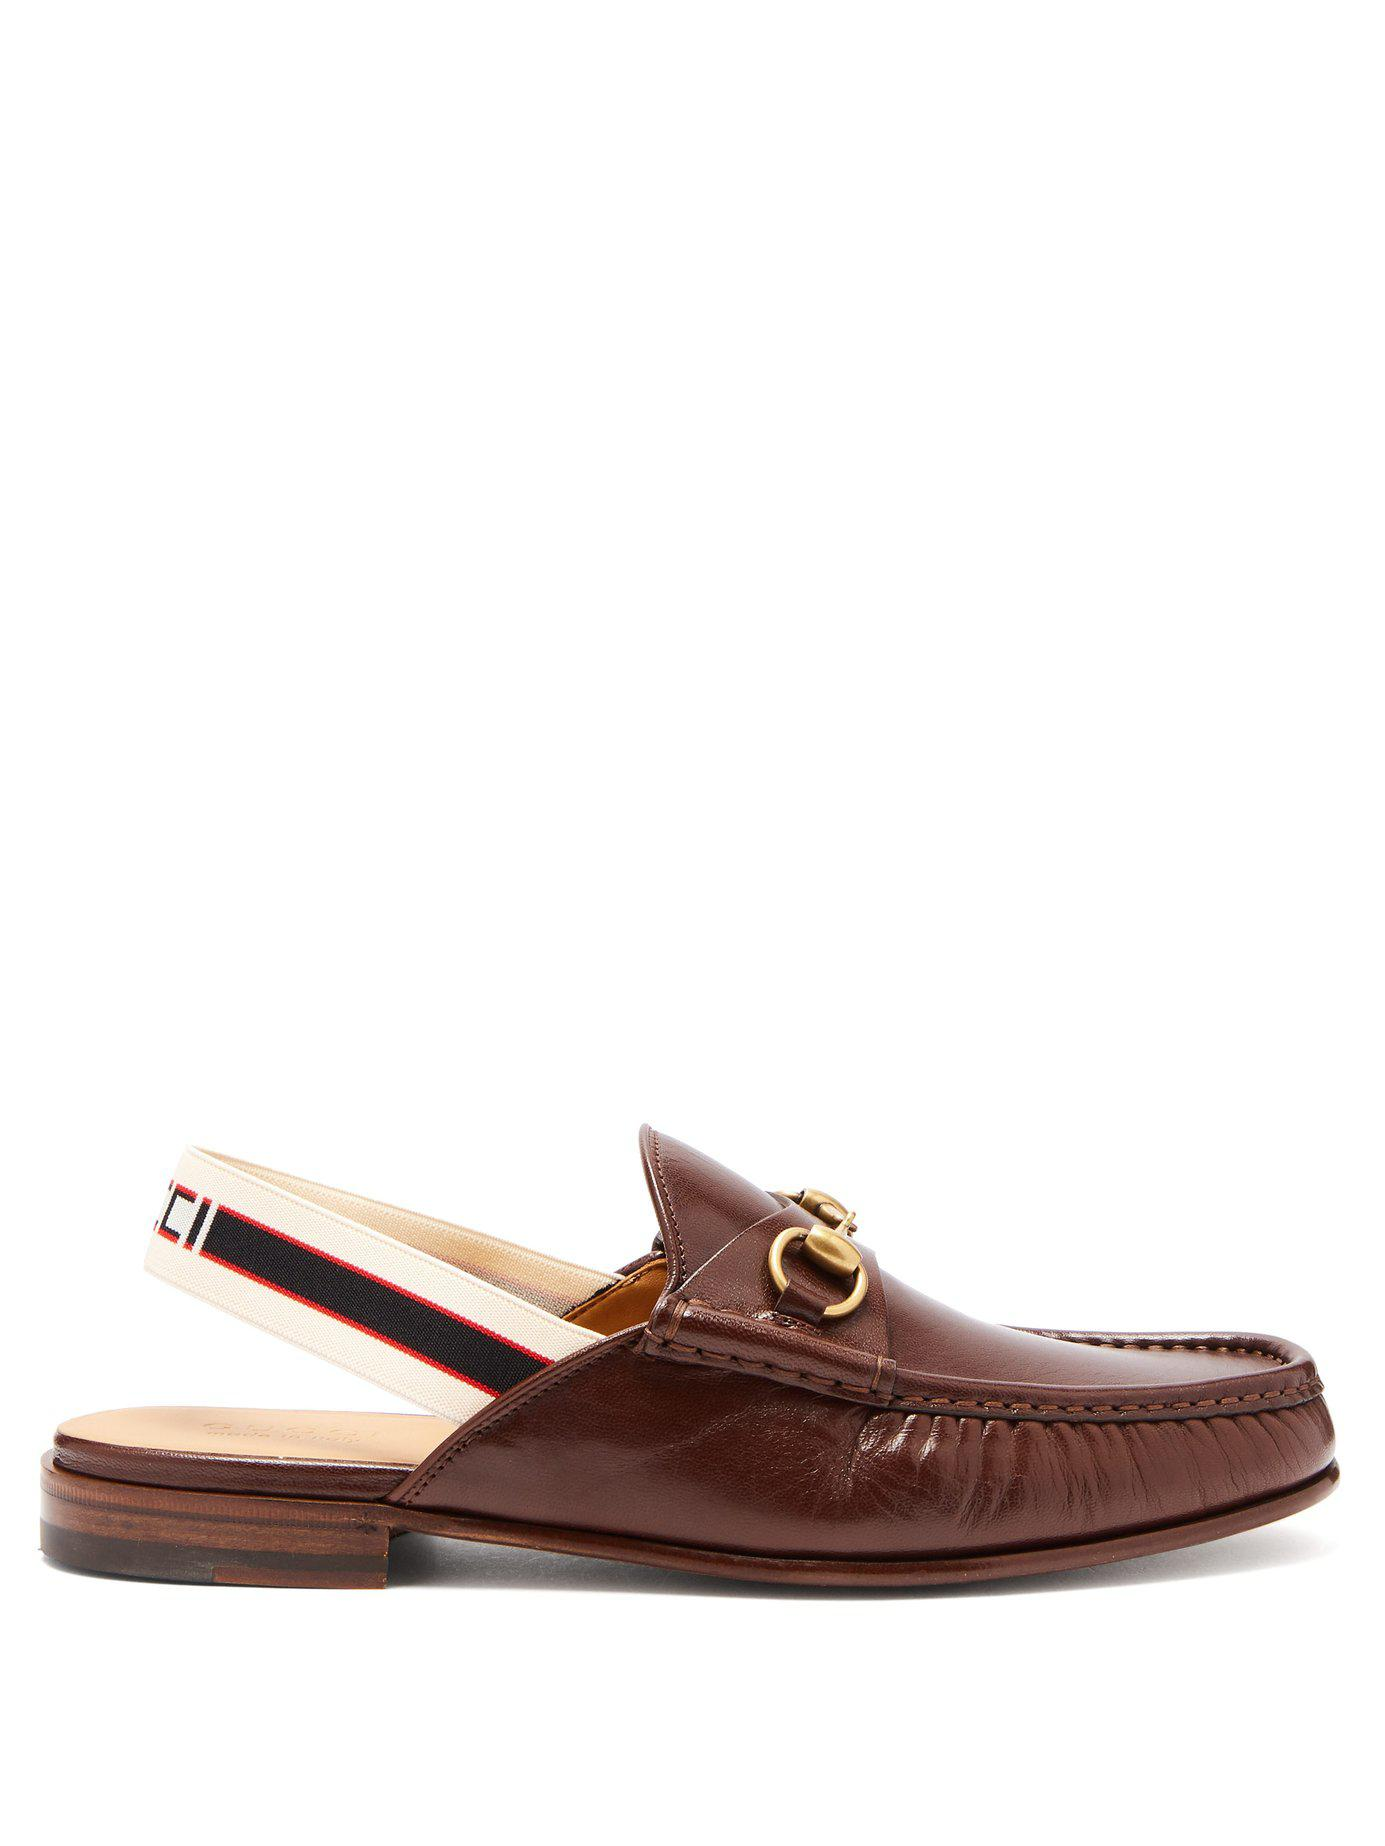 ac0f8fccf47 Lyst - Gucci Roos Horsebit Slingback Strap Leather Loafers in Brown ...